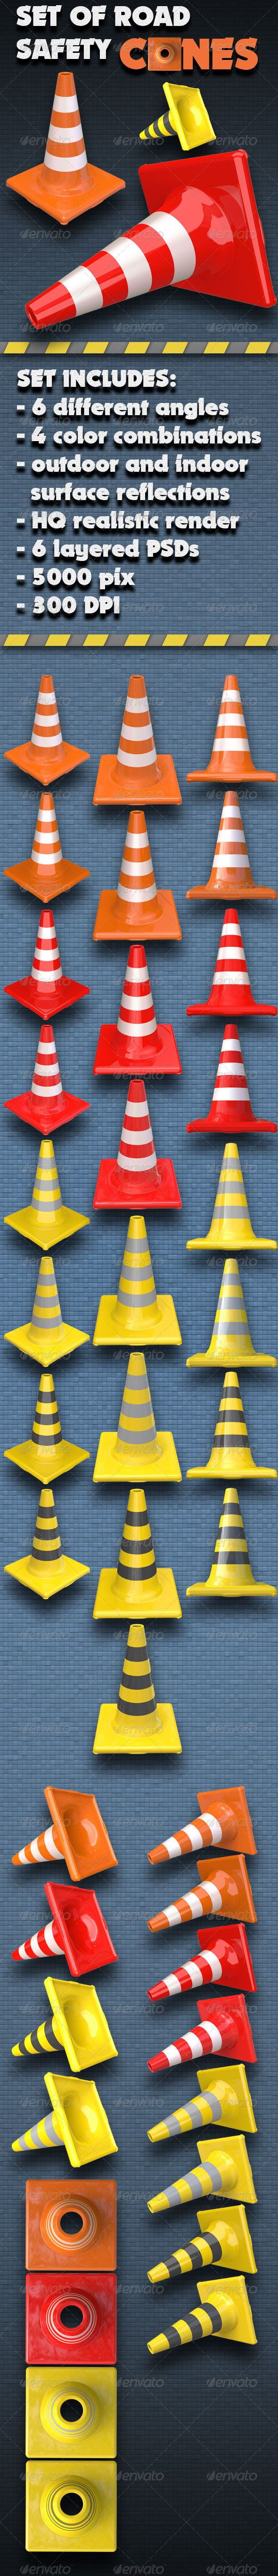 Set of Road Traffic Safety Cones